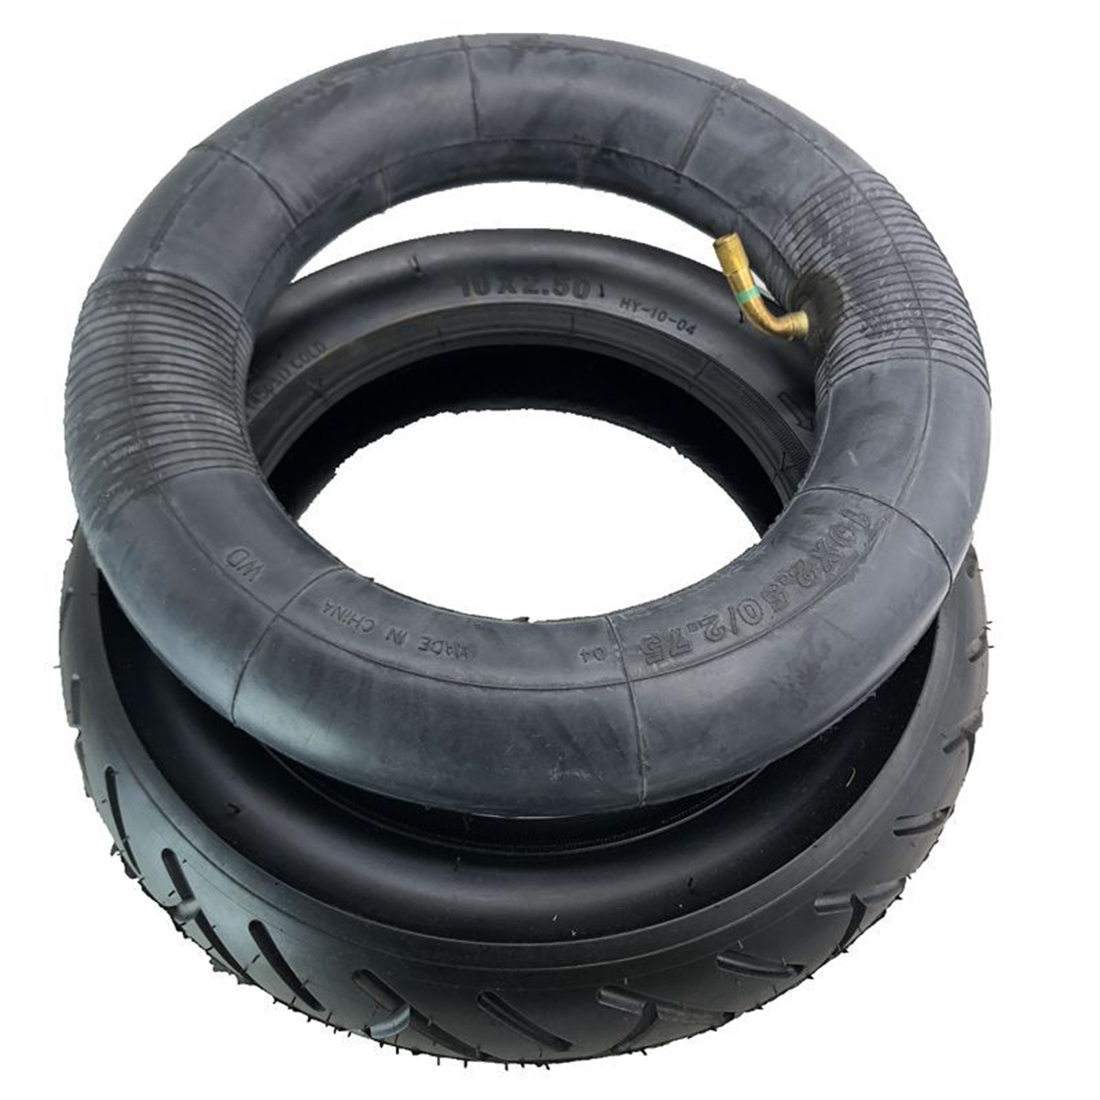 Electric Scooter 10x2.50 Tire + Inner Tube Set 10 Inch Thick Butyl Rubber Good Air Tightness Scooter Accessories Parts